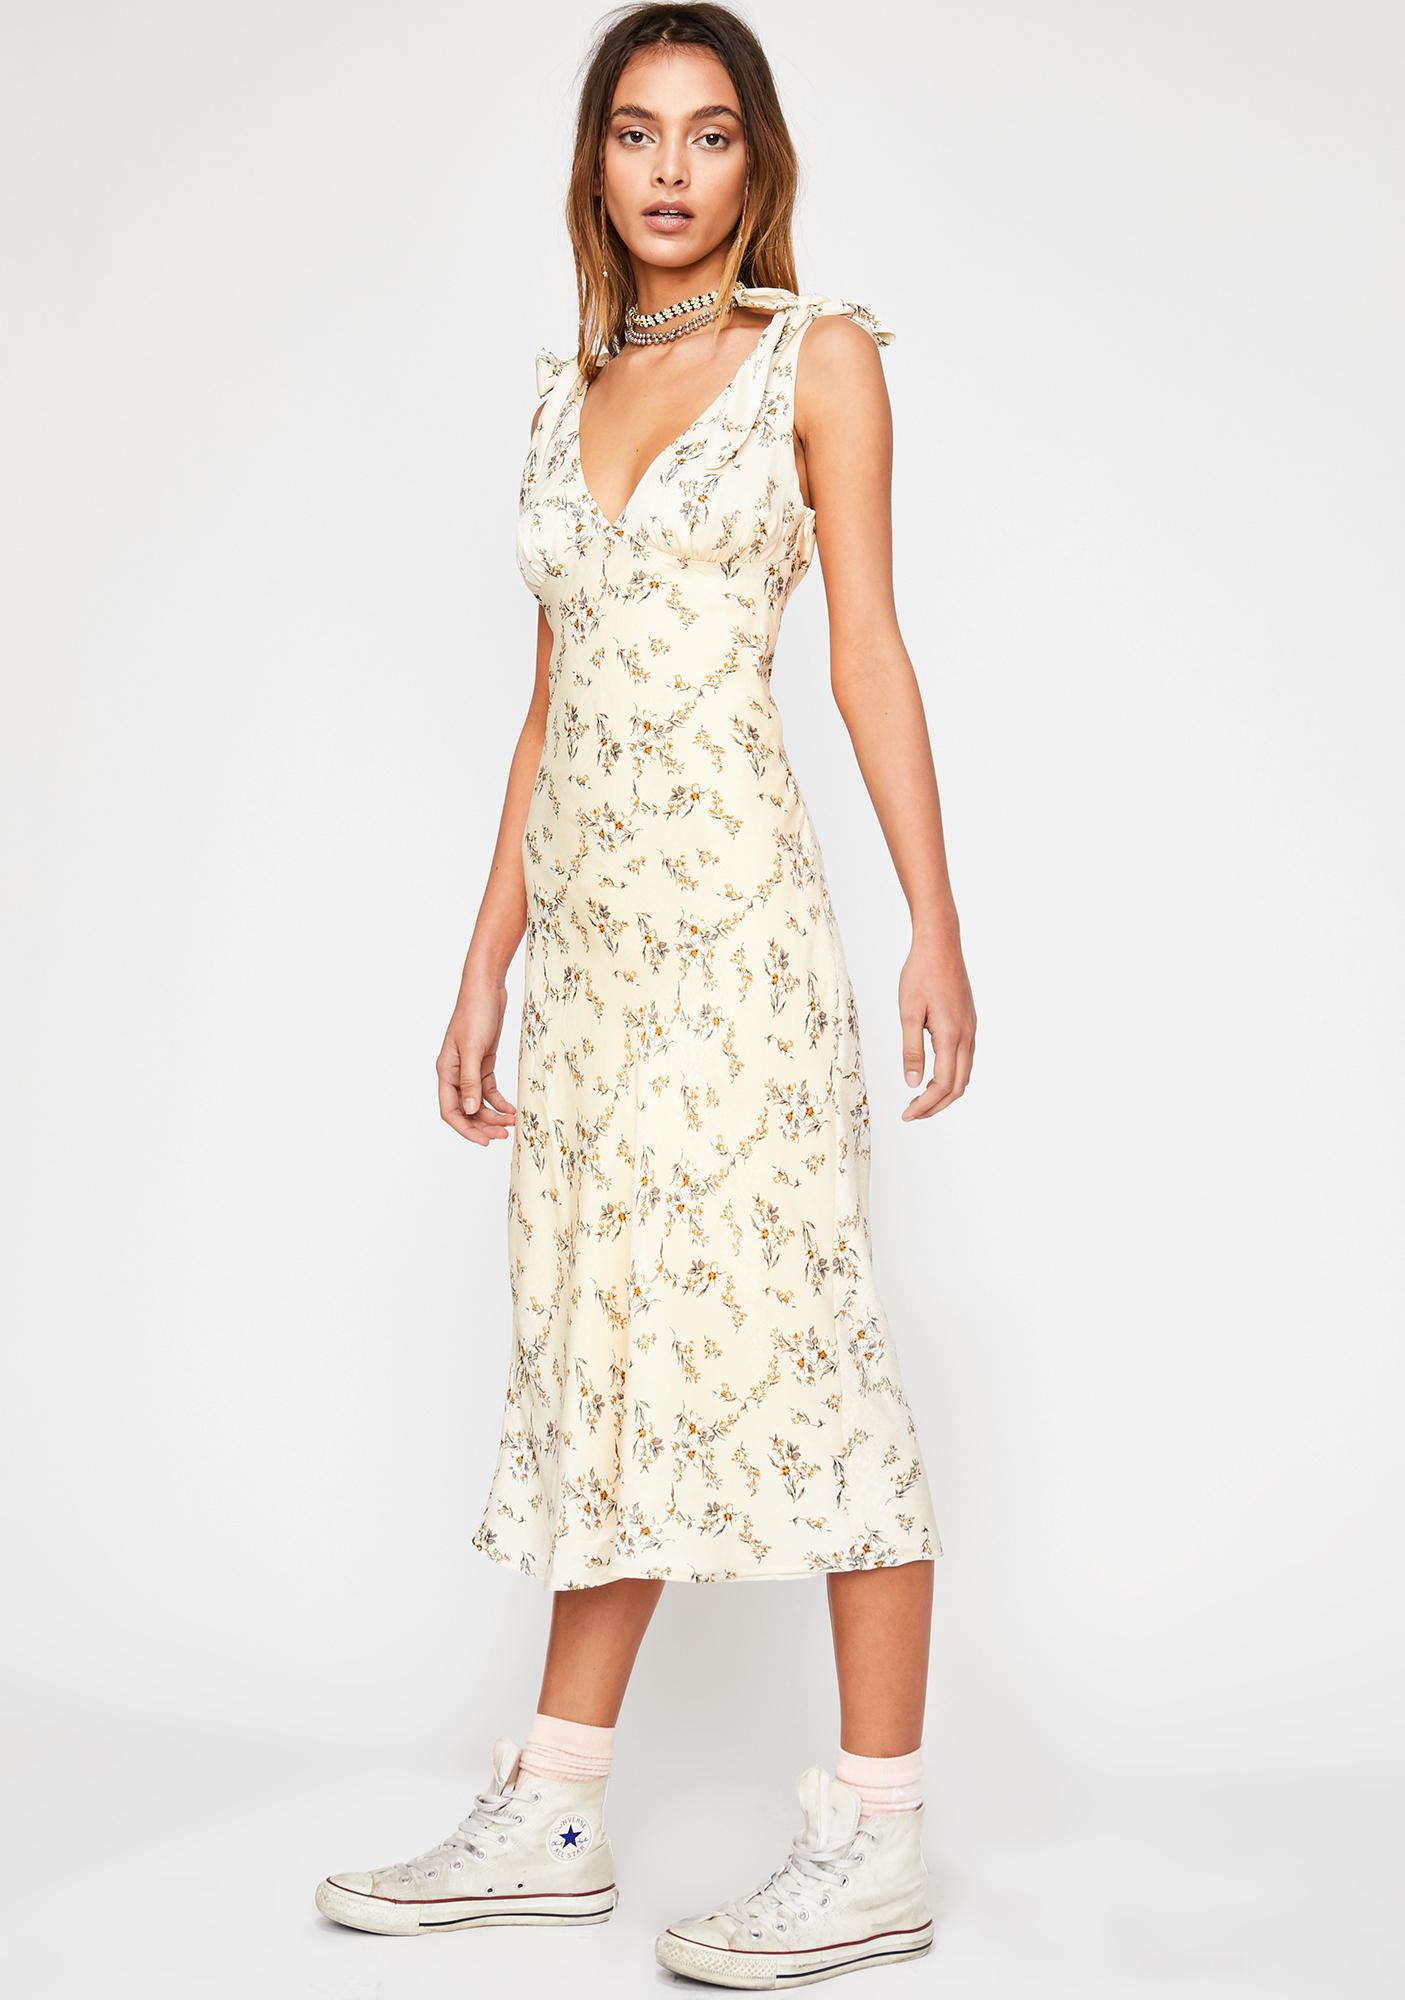 Wildflower About You Maxi Dress